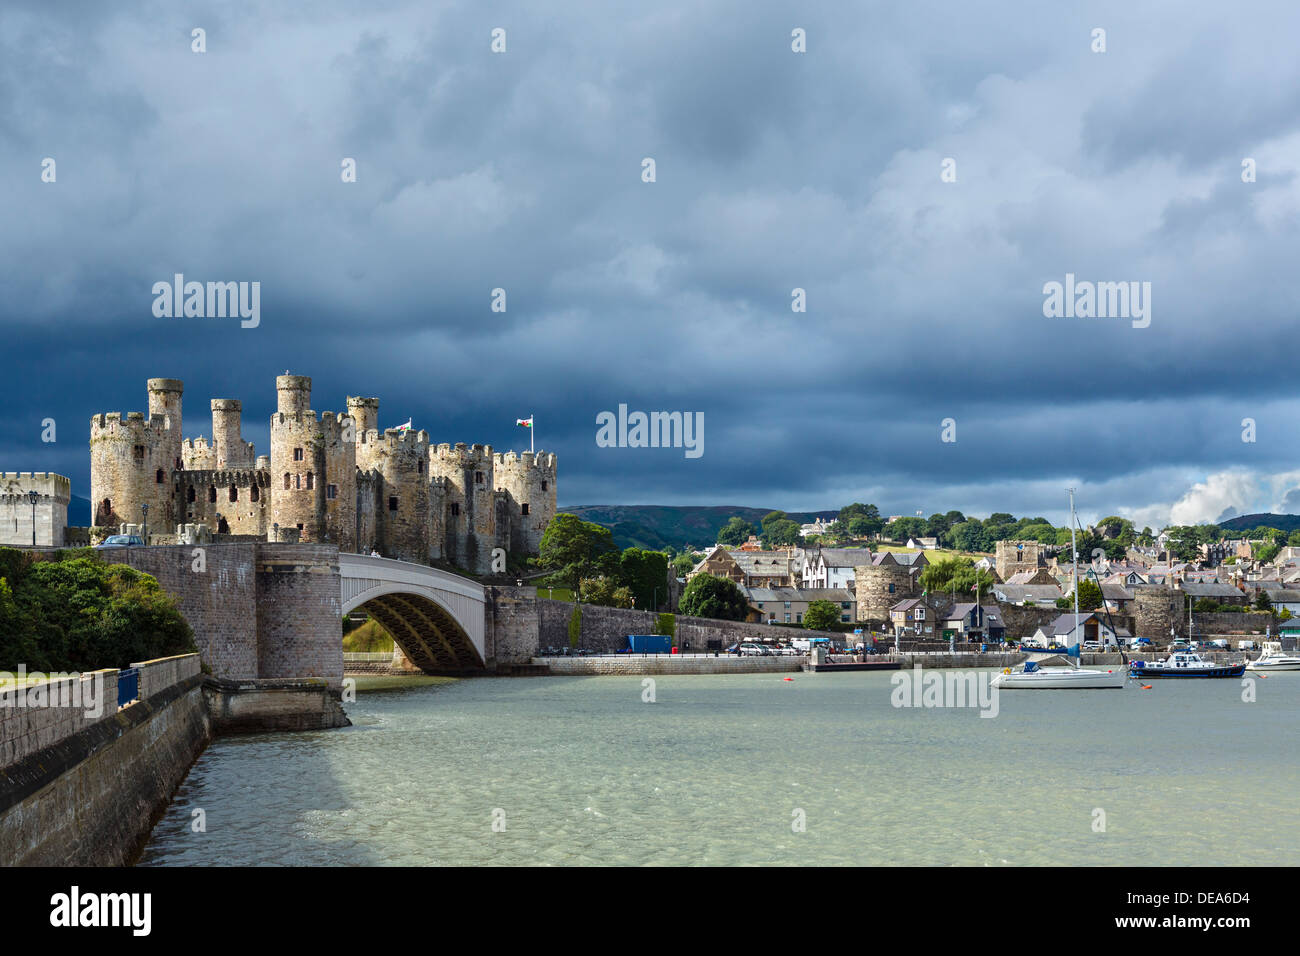 View of Conwy Castle and harbour on the river estuary, Conwy, North Wales, UK - Stock Image